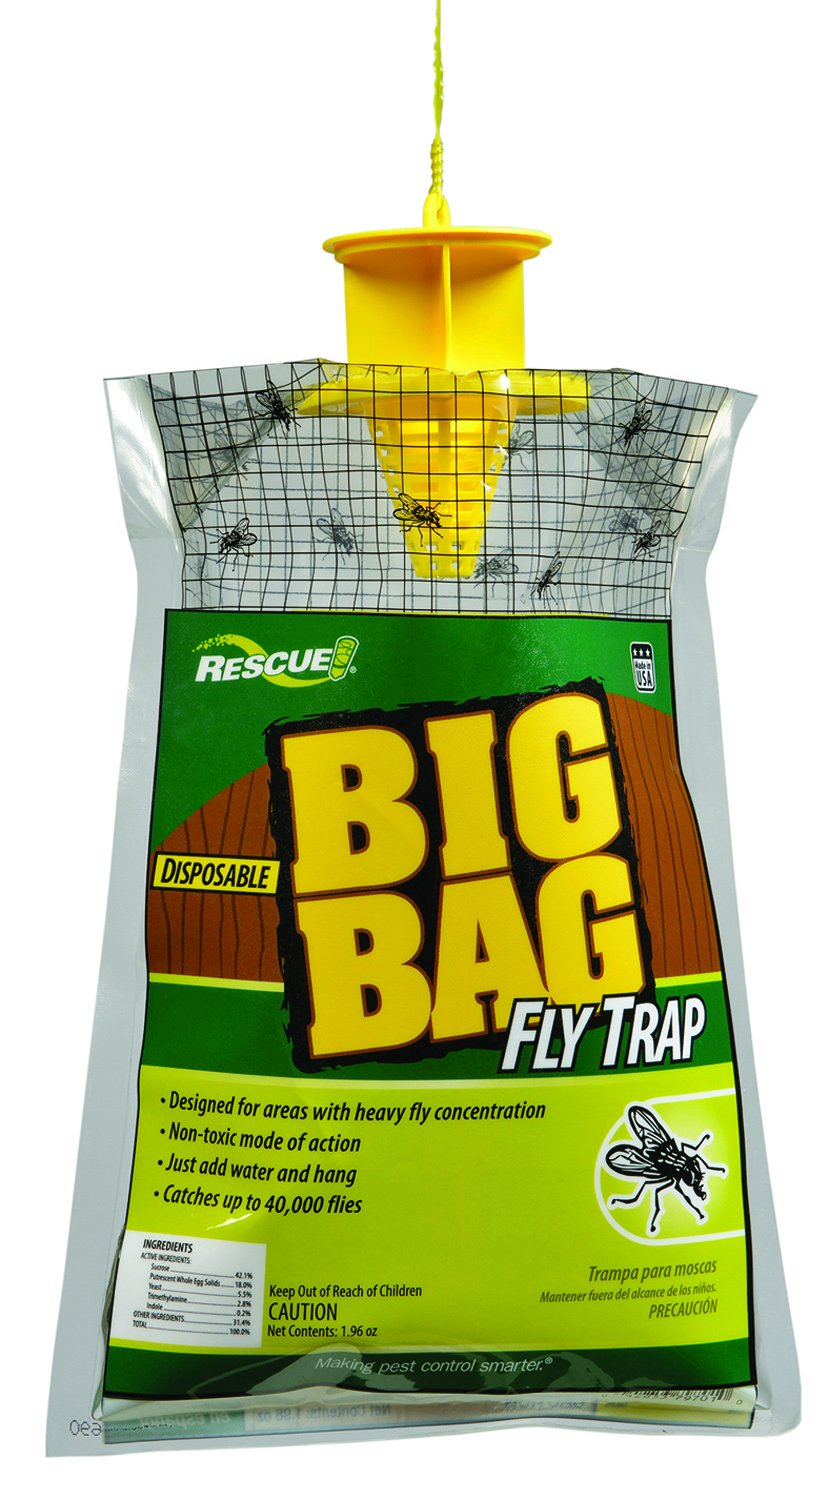 RESCUE Outdoor Non-Toxic Disposable Big Bag Fly Trap